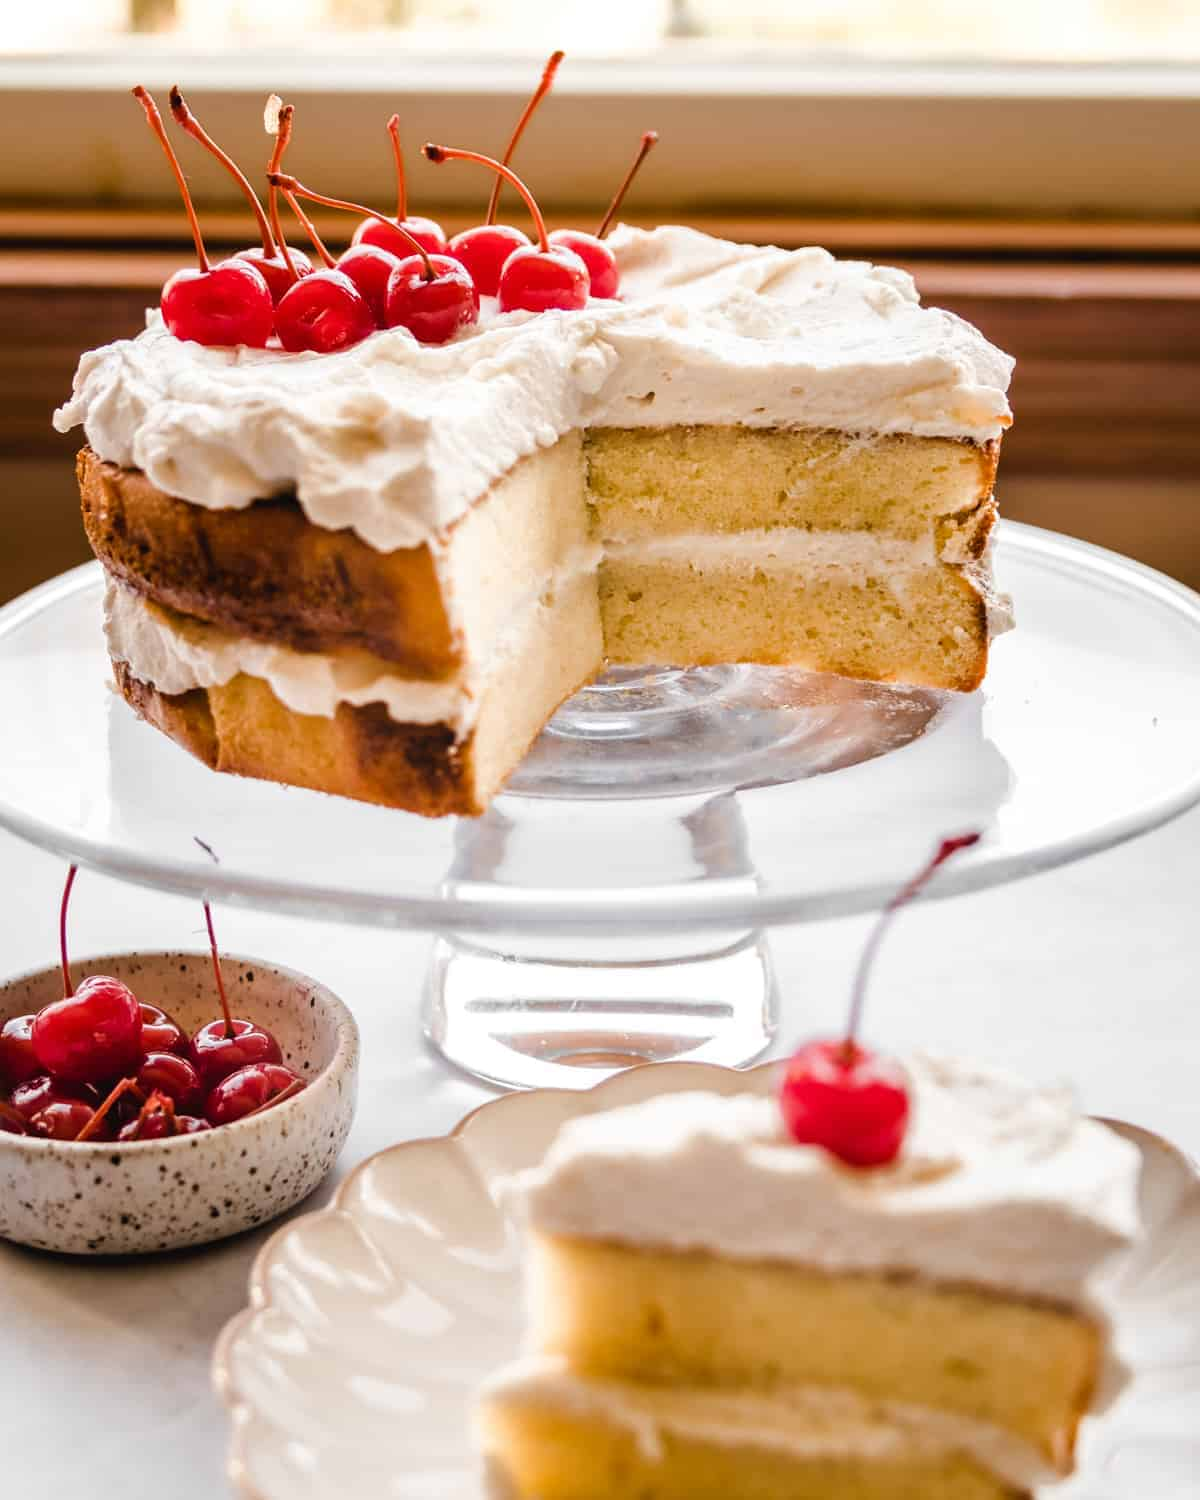 almond layer cake with a slice taken out of it